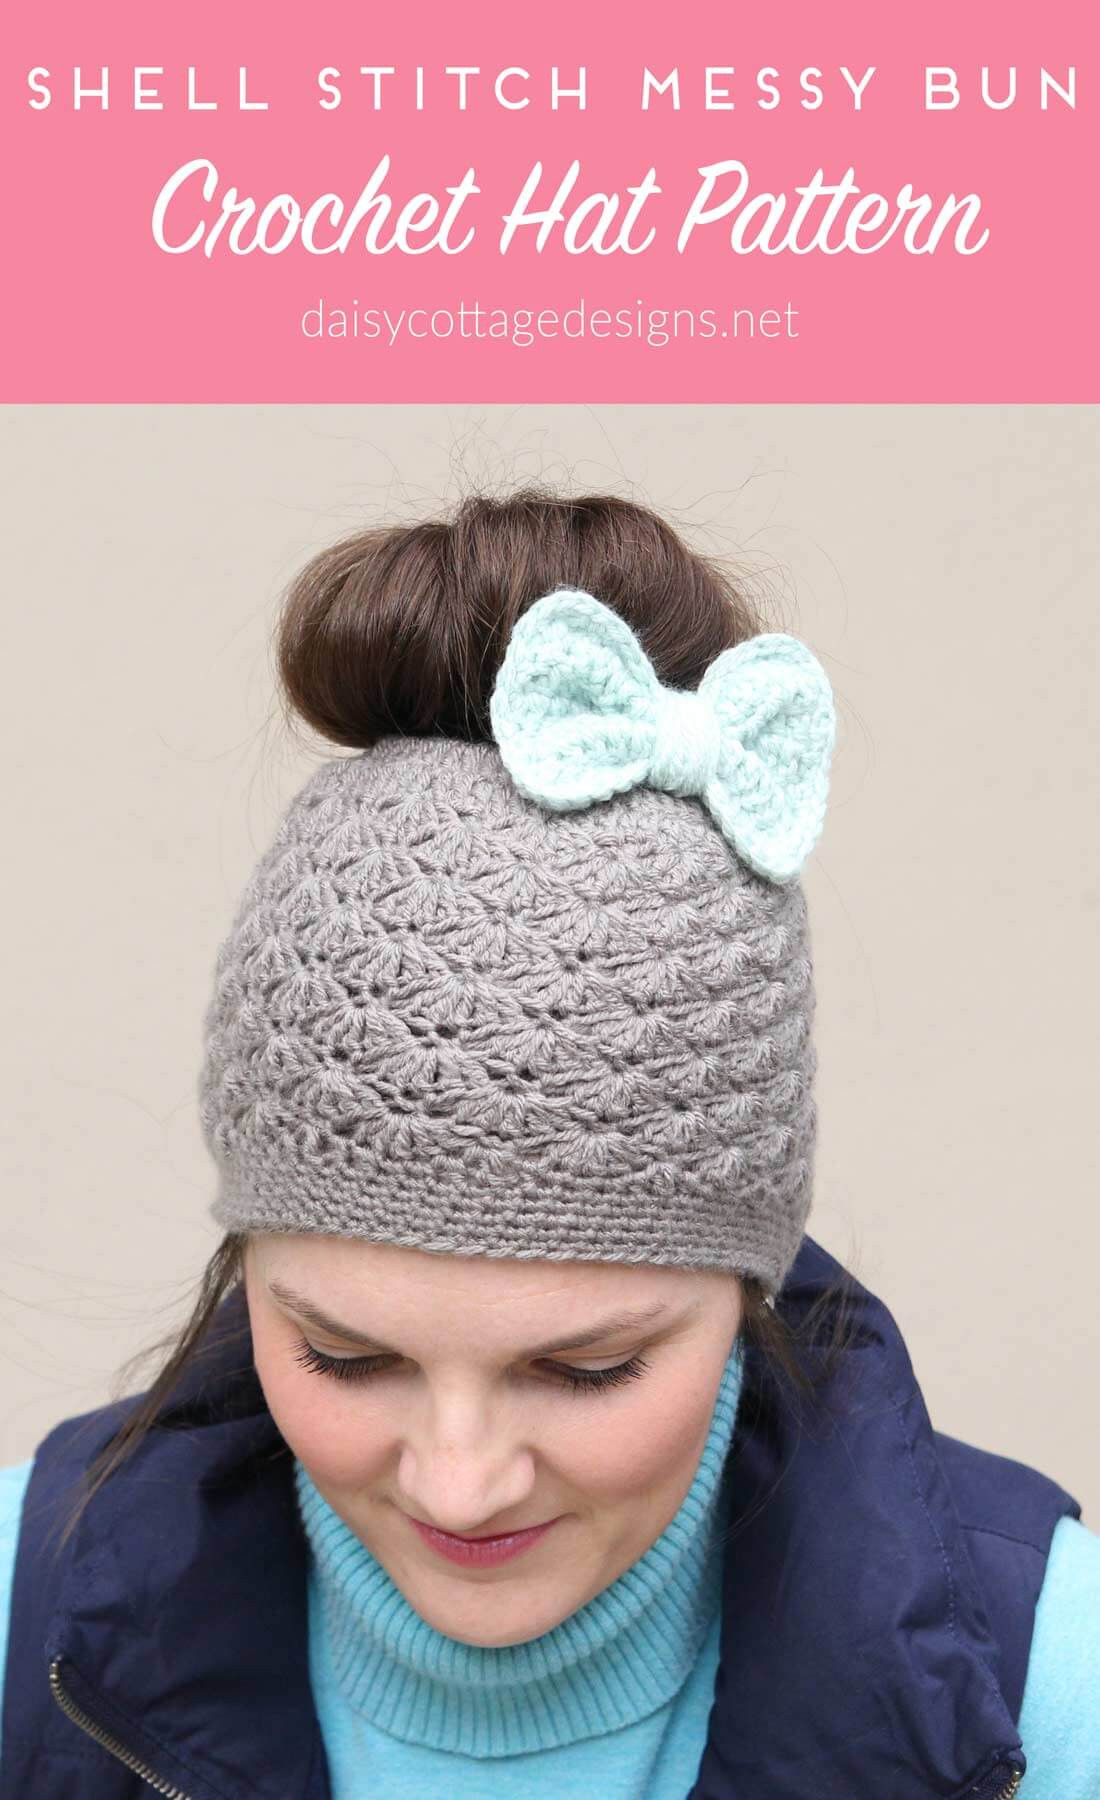 Messy Bun Hat Fresh Shell Stitch Messy Bun Crochet Hat Pattern Daisy Cottage Of Awesome 43 Pics Messy Bun Hat